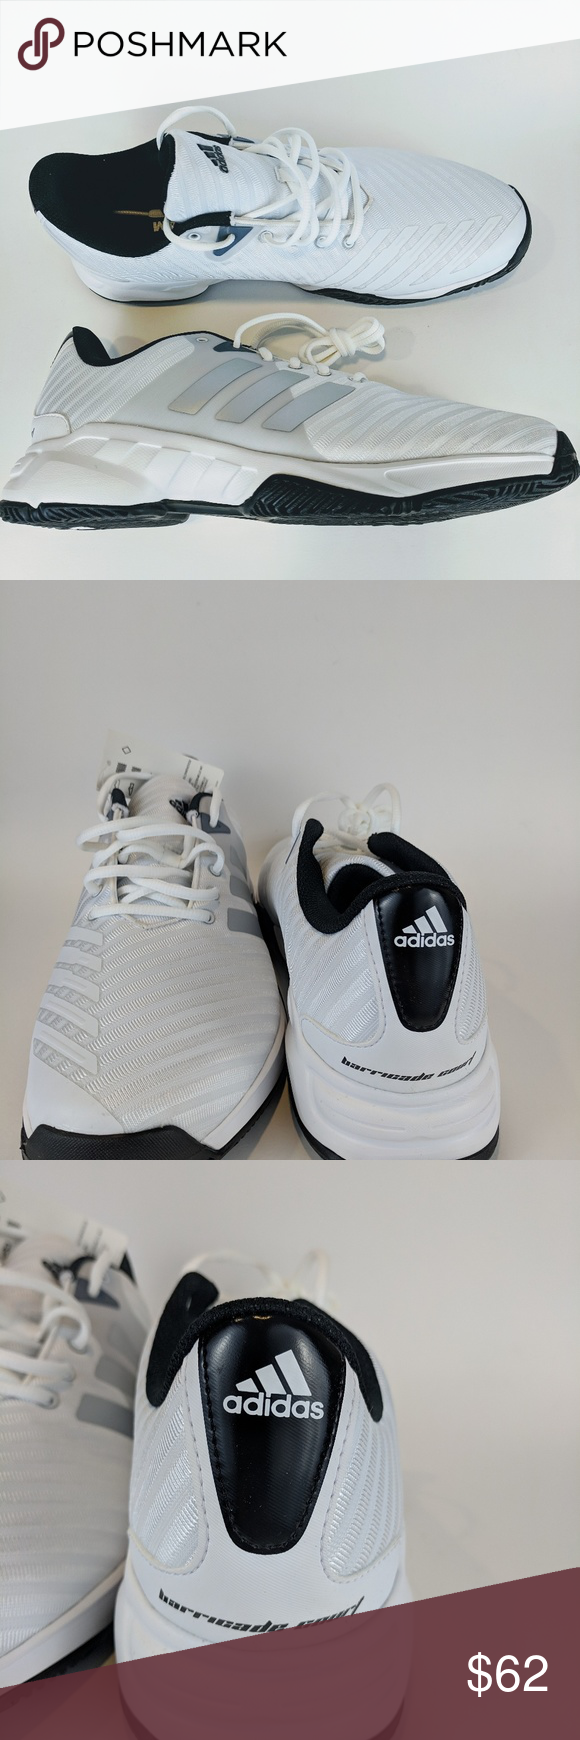 Brand New Barricade Court 3 Wide Shoes New Tennis Court Shoes With Box Adidas Shoes Athletic Shoes Wide Shoes Shoes Tennis Court Shoes